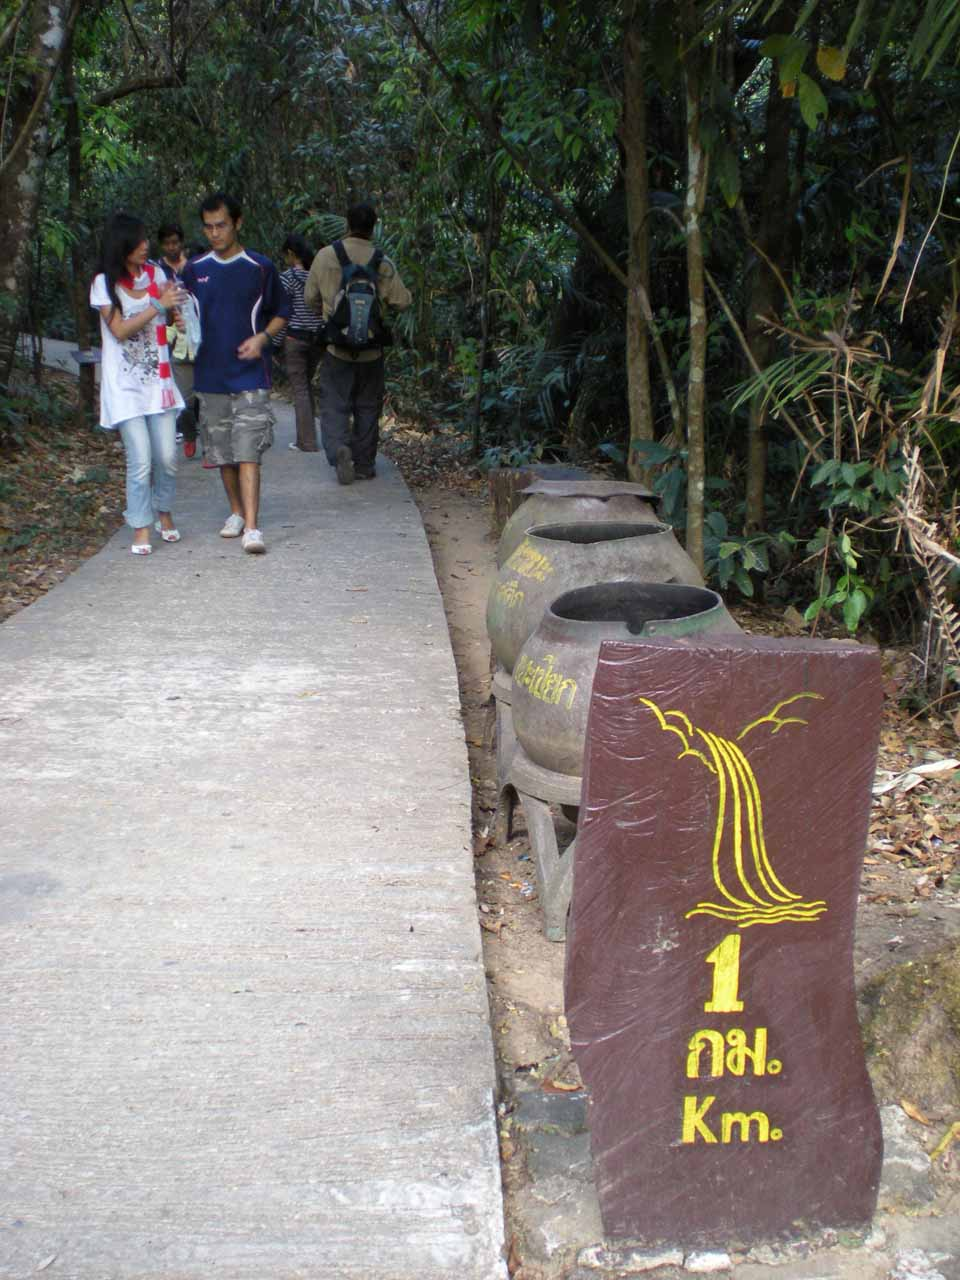 Sign indicating the waterfall was about 1km away